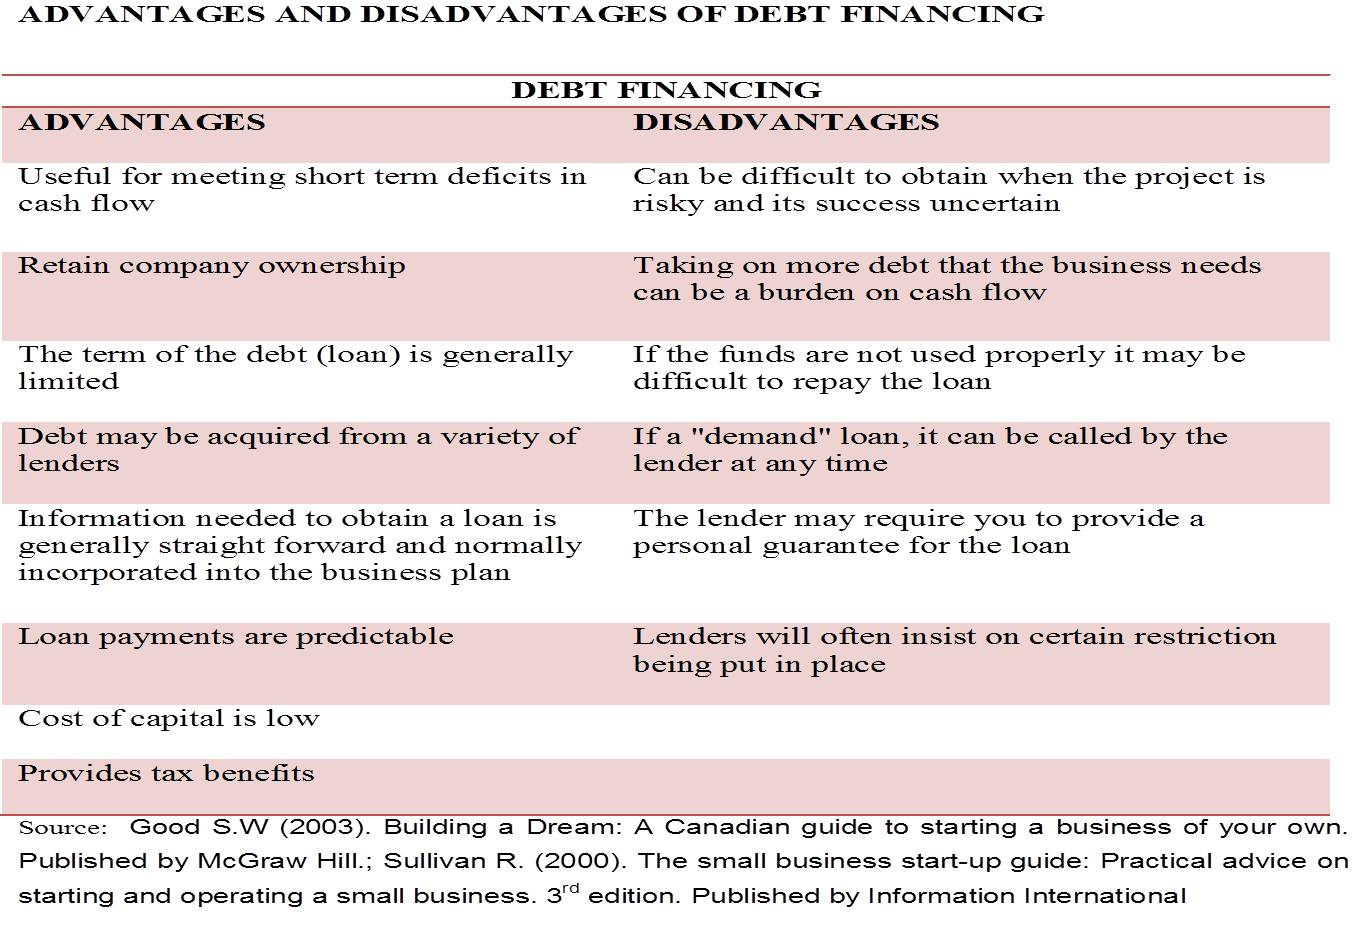 Disadvantages and benefits